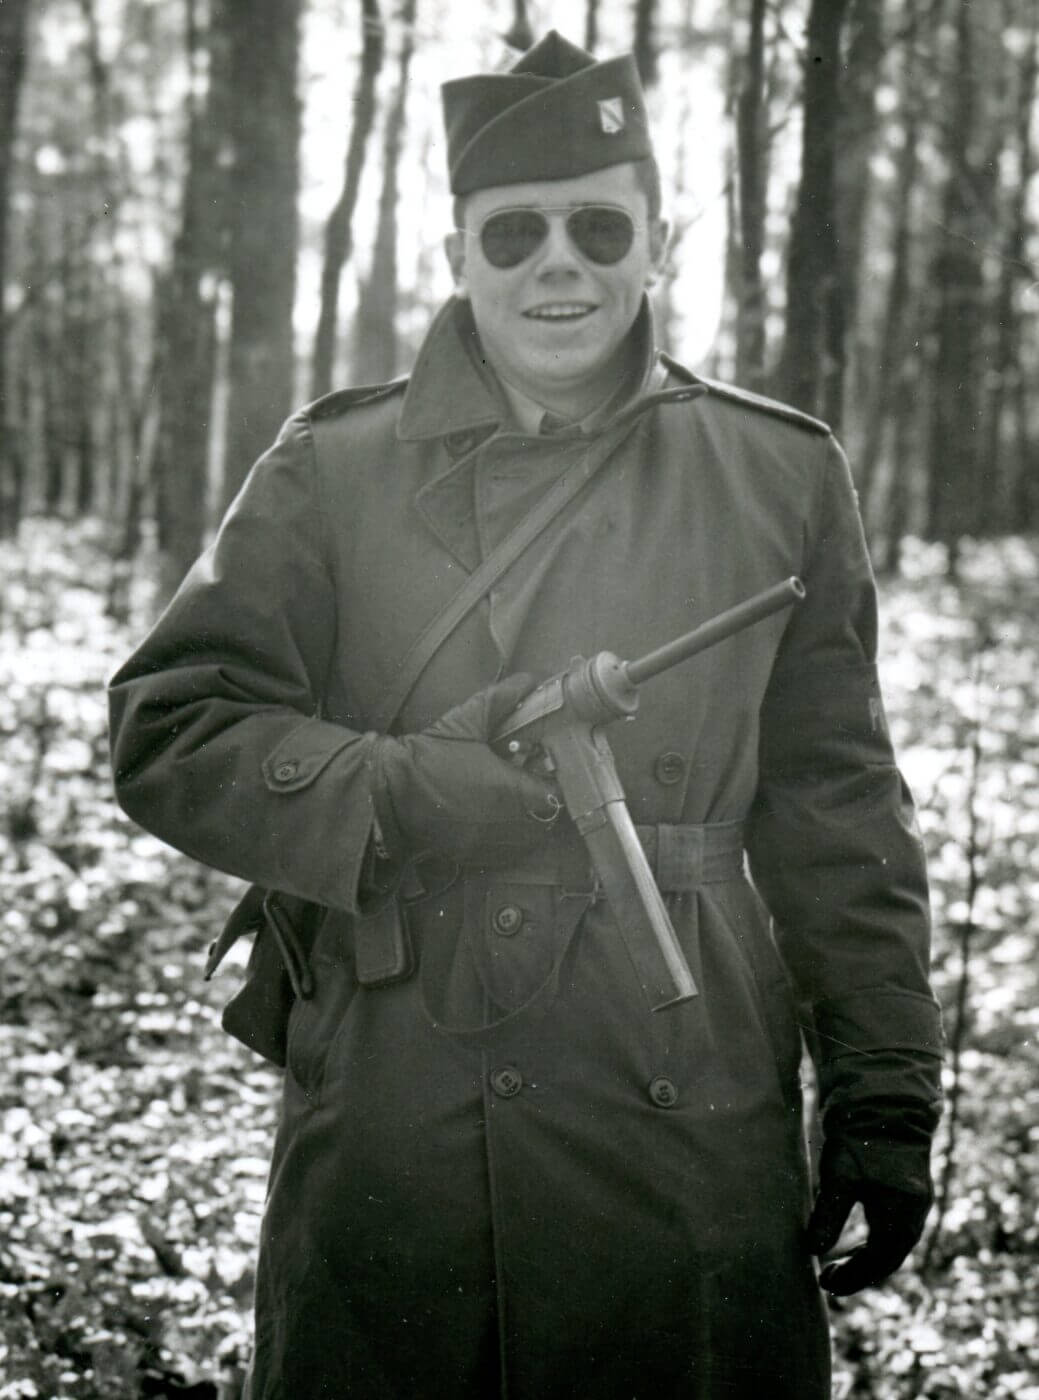 GI armed with the M3 SMG in post-war Germany